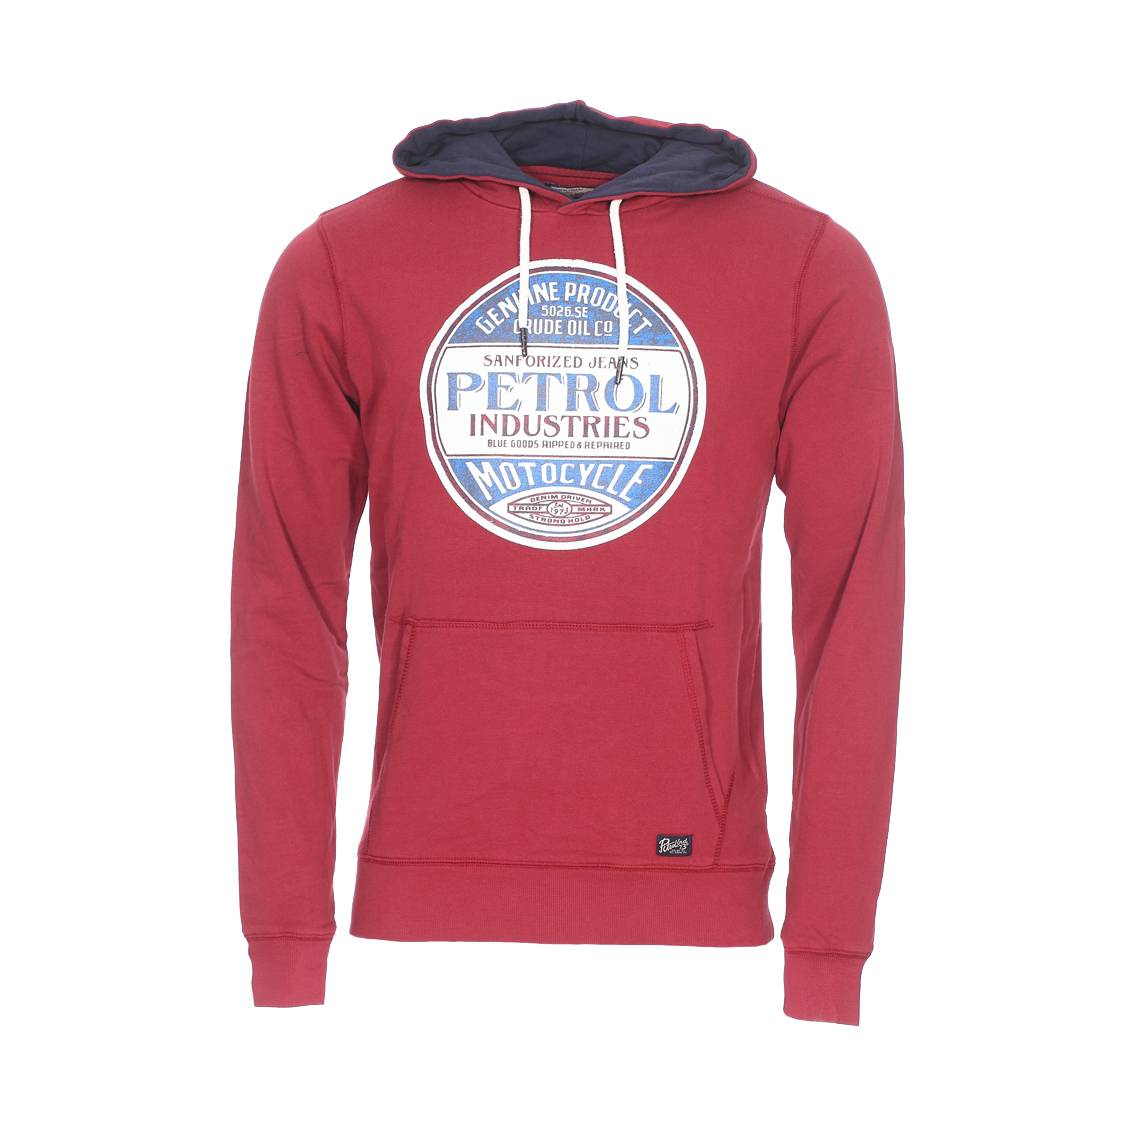 Petrol Industries Sweat à capuche Petrol Industries en coton mélangé bordeaux floqué - ROUGE - XL